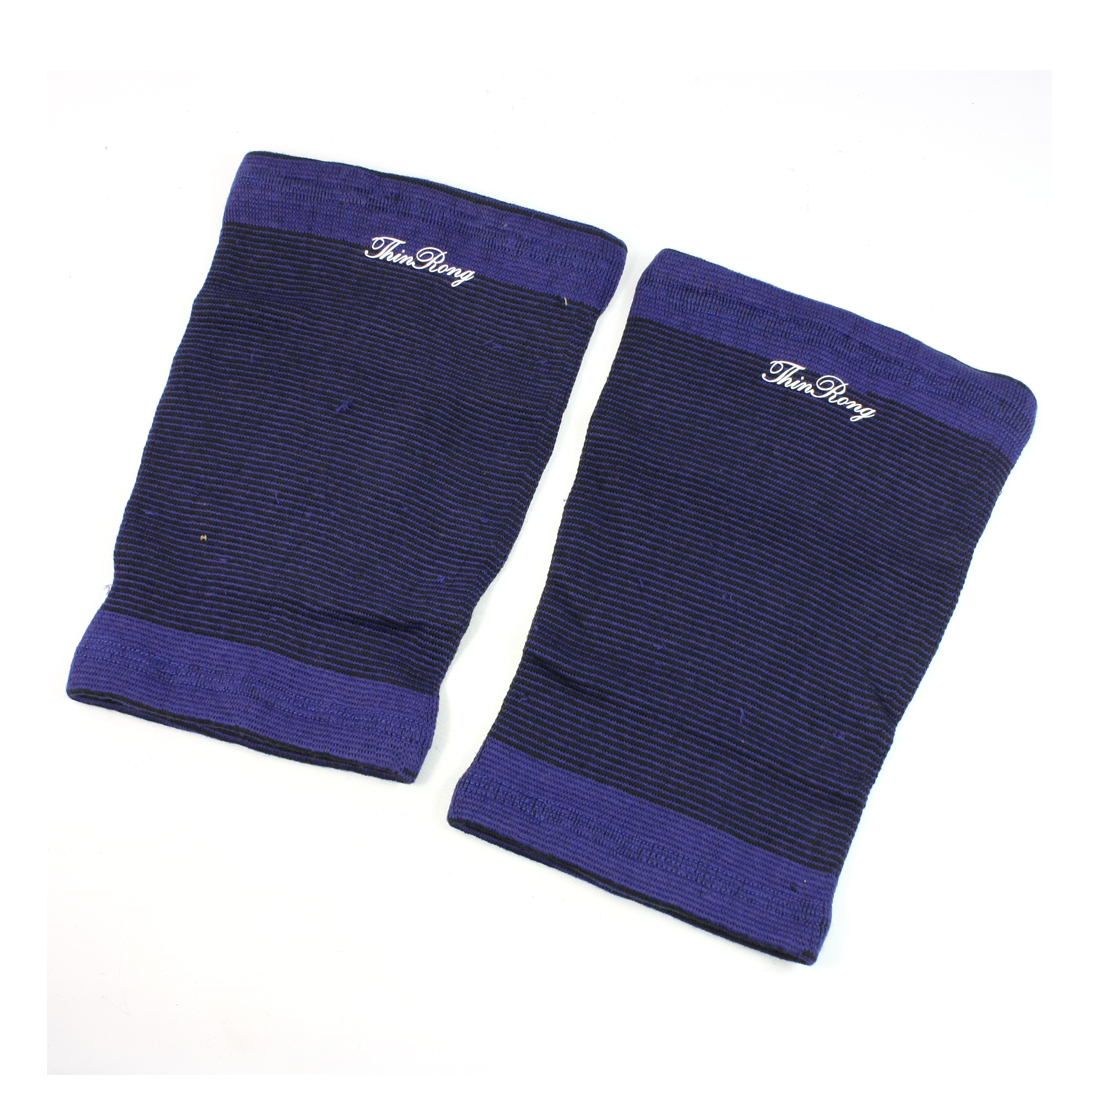 Sports Protector Pullover Wearing Textured Elastic Blue Black Knee Support Pair